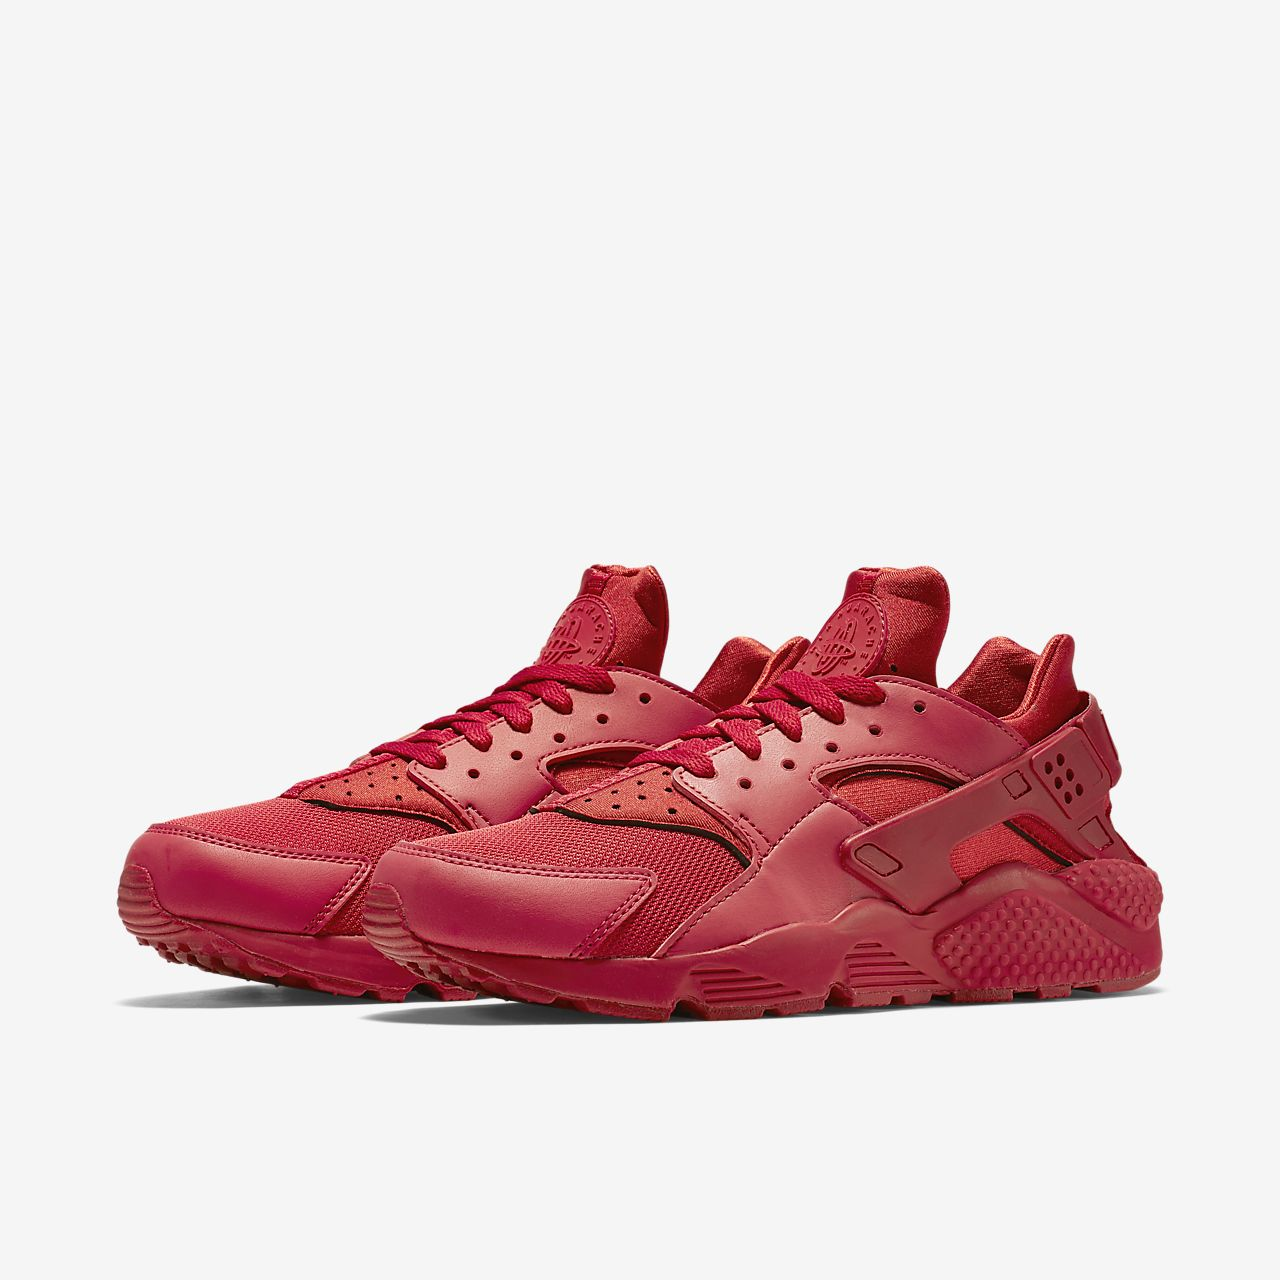 new product 1b610 61581 ... Nike Air Huarache Men s Shoe